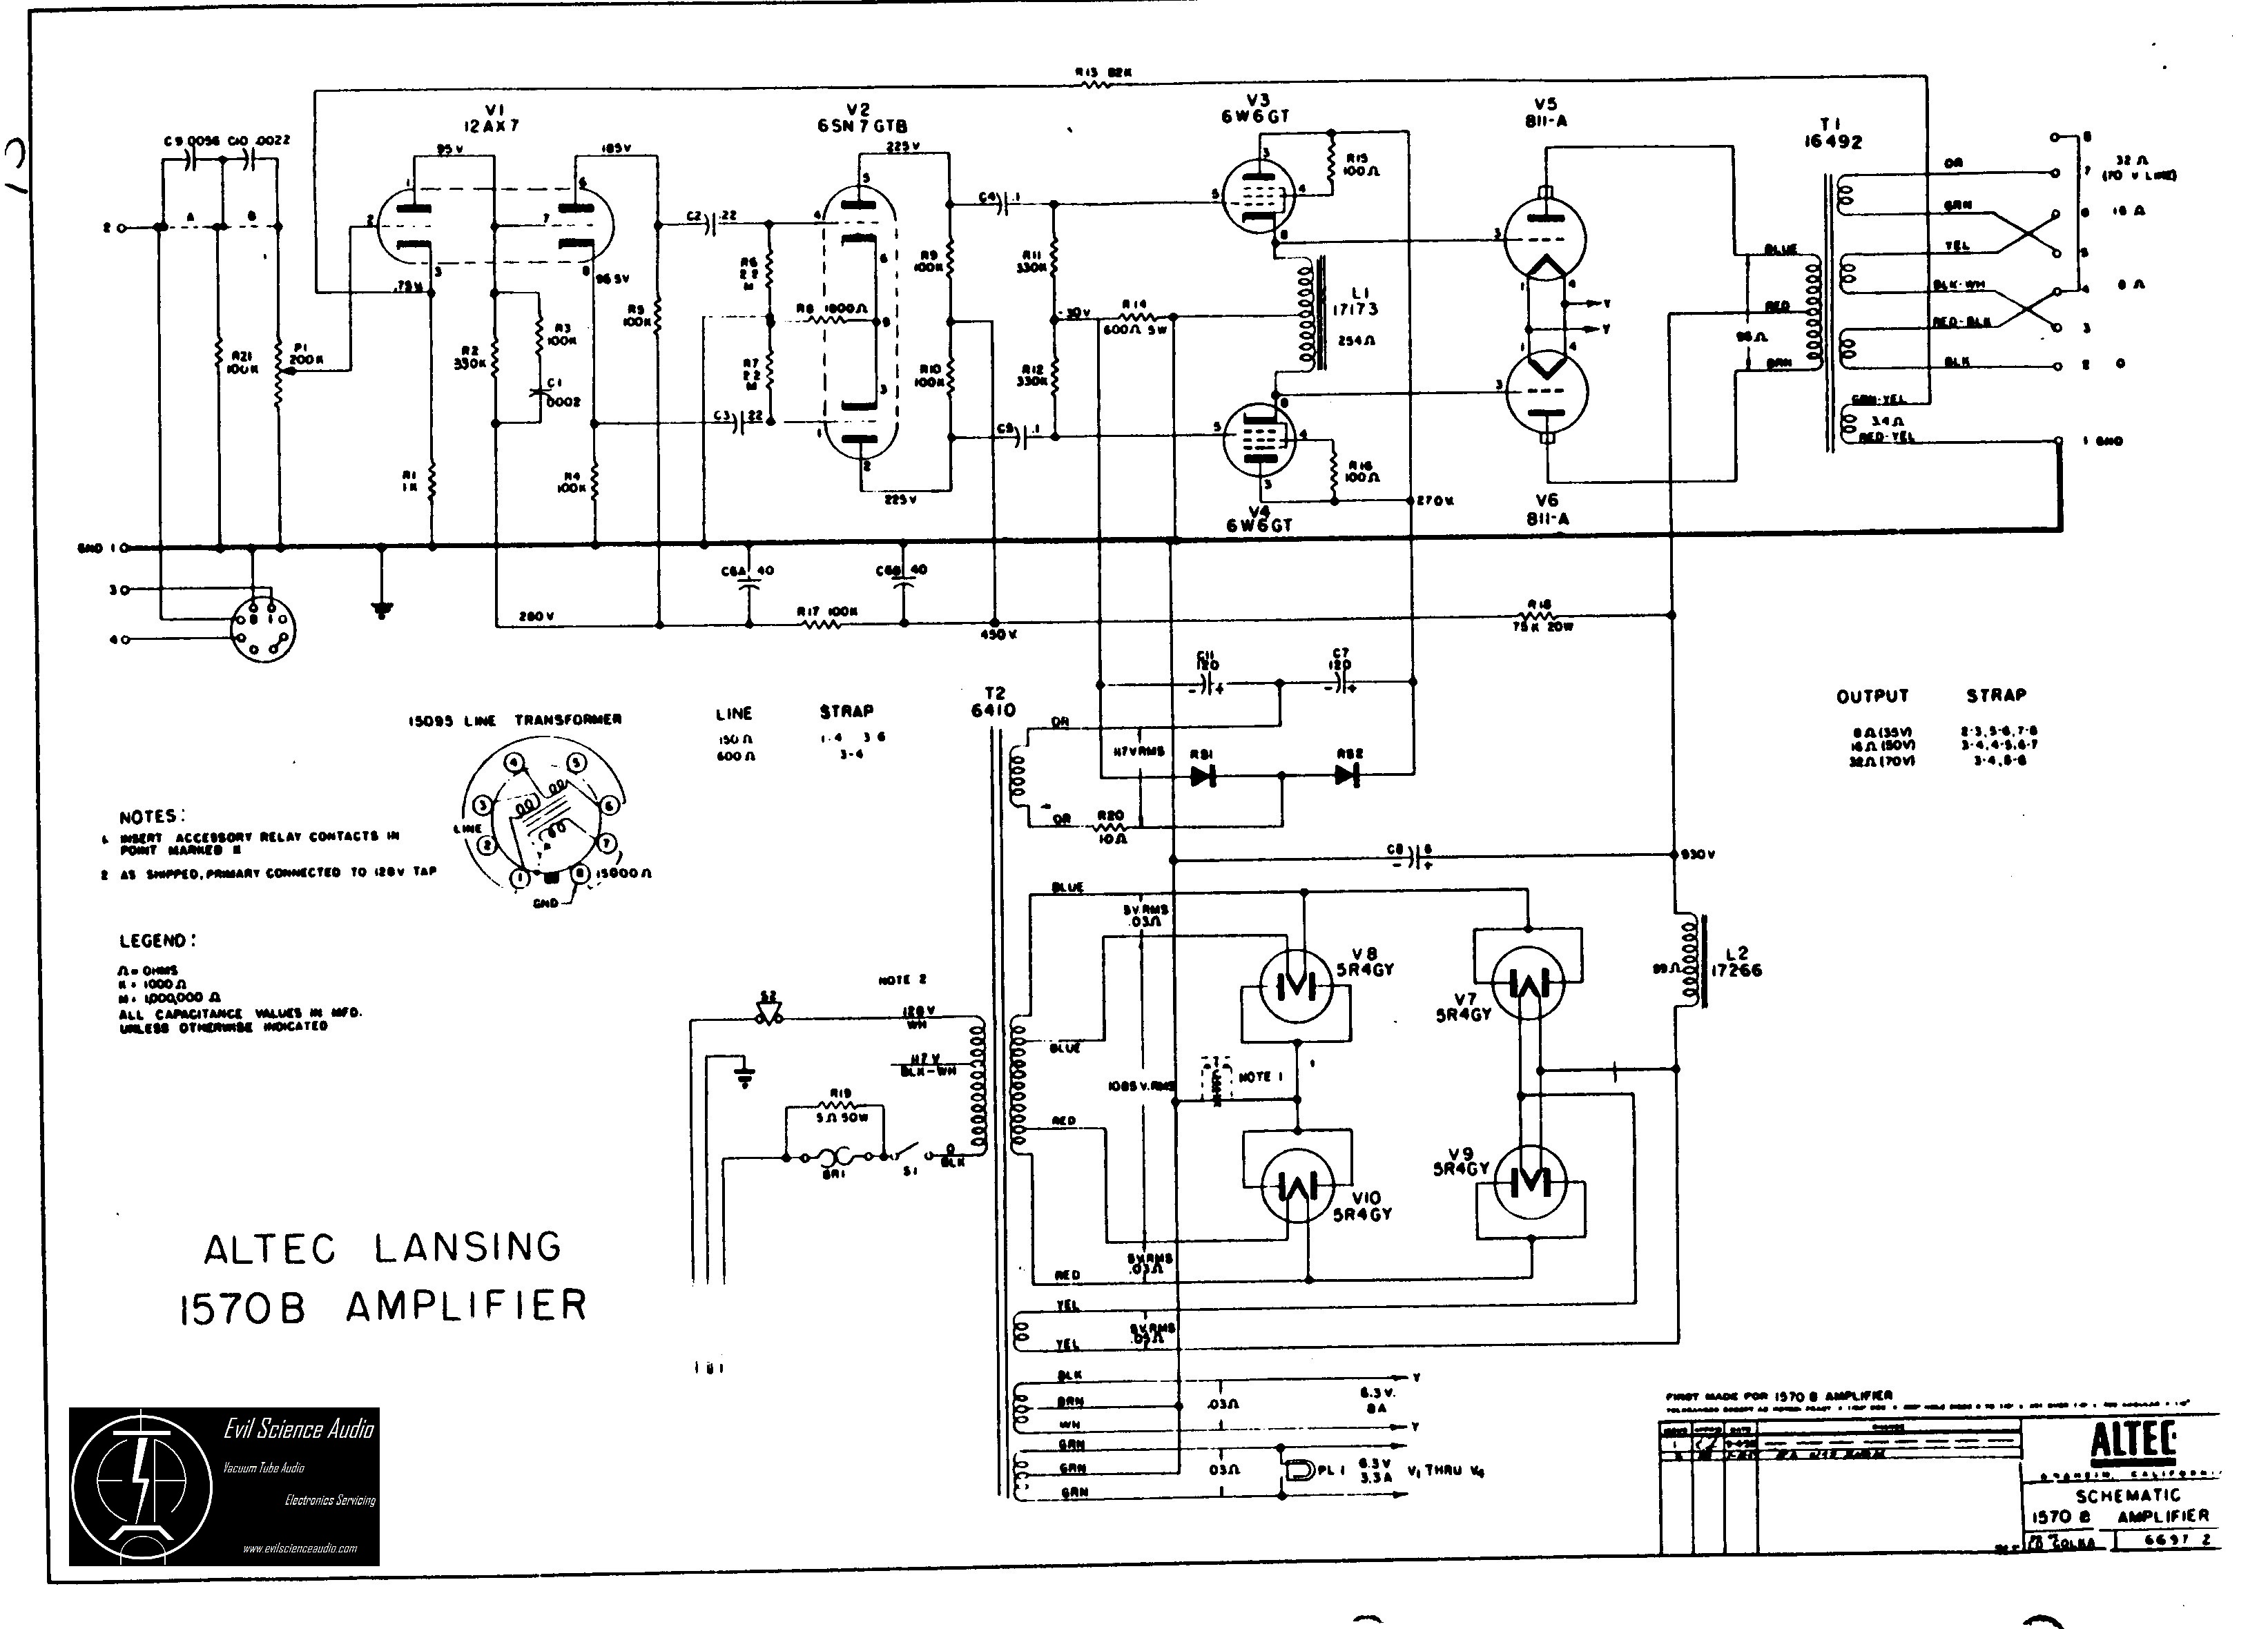 Altec Wiring Diagram Daily Update 1998 Ski Doo Online 9 22 Images Lansing Vs4121 At200